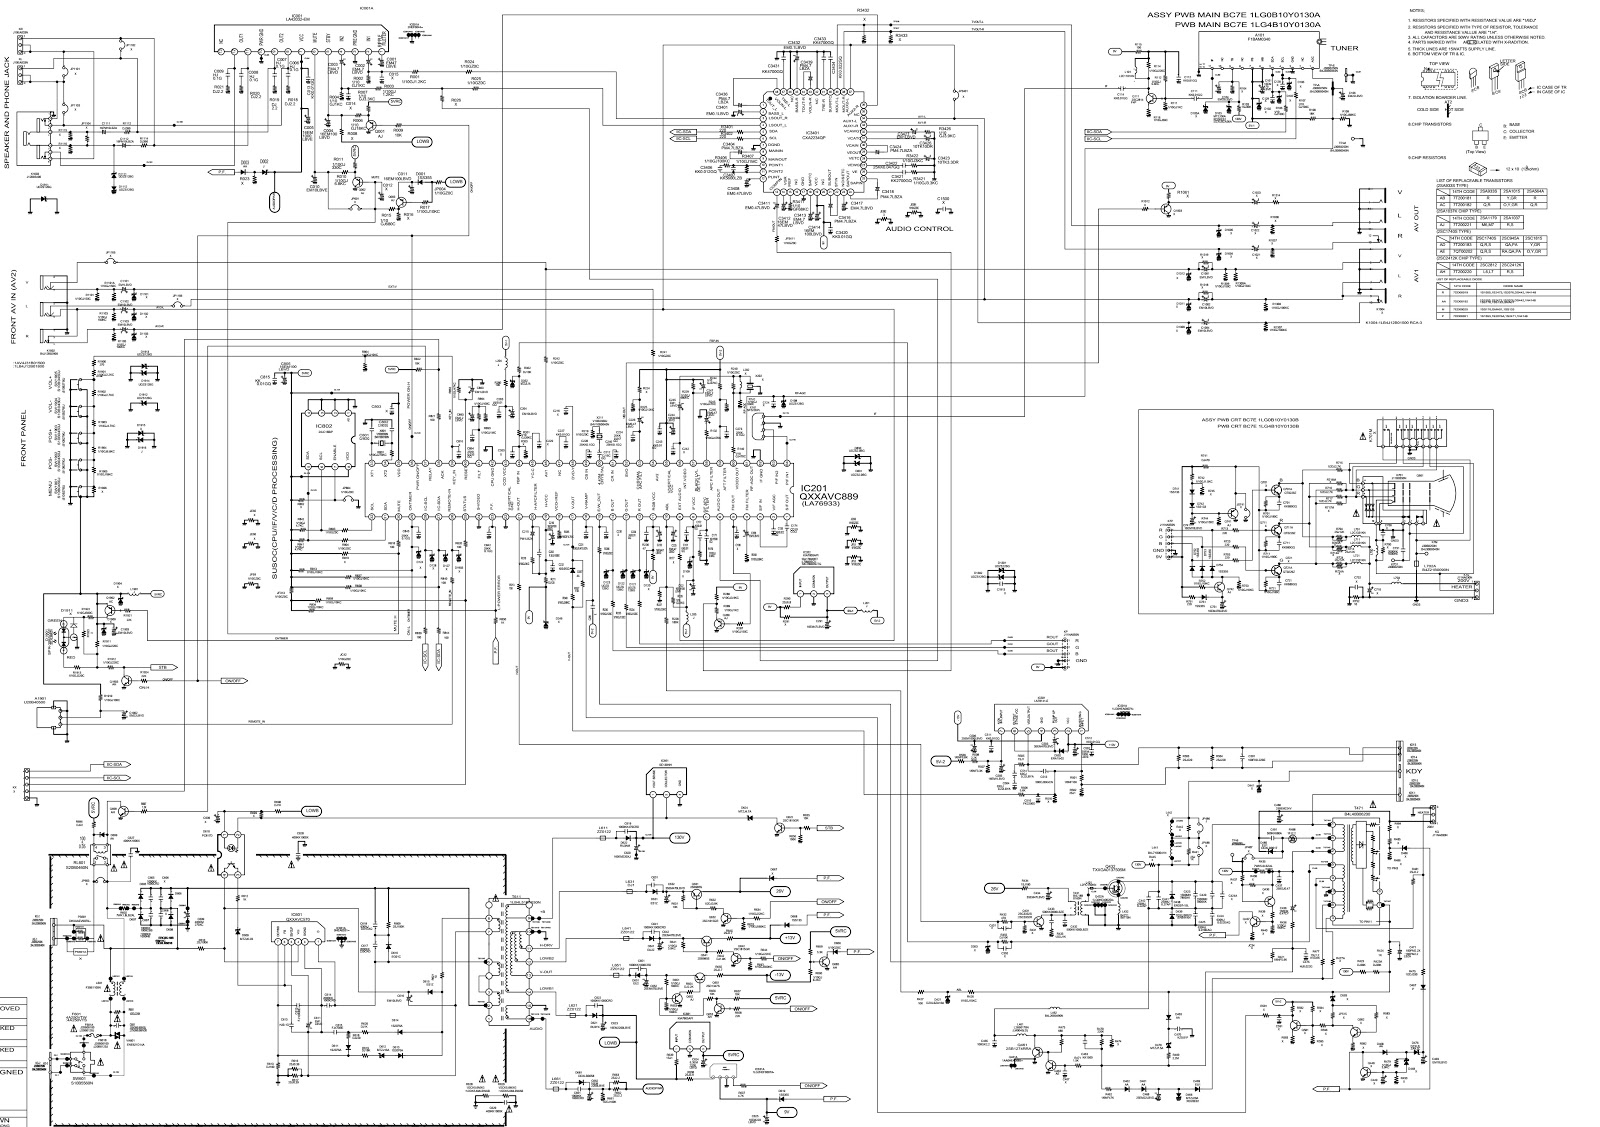 sanyo tv circuit diagram wiring diagram third level rh 14 2 14 jacobwinterstein com wall mount tv wiring typical home wiring diagrams audio [ 1600 x 1127 Pixel ]